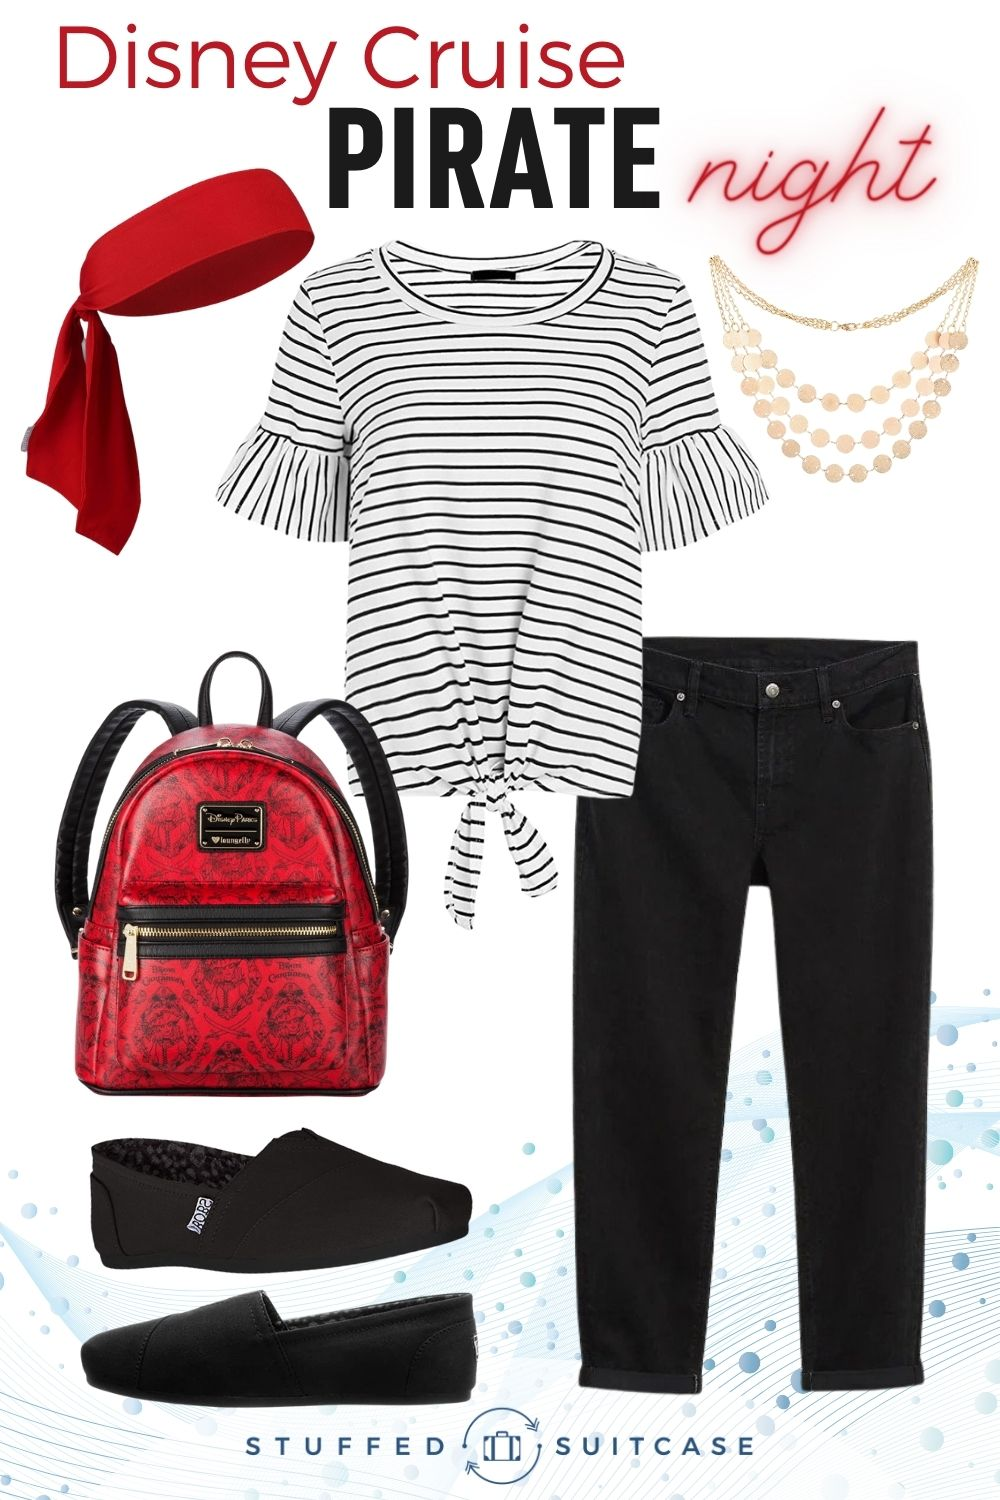 Disney cruise pirate night outfit for women with striped top black jeans redd pirate backpack